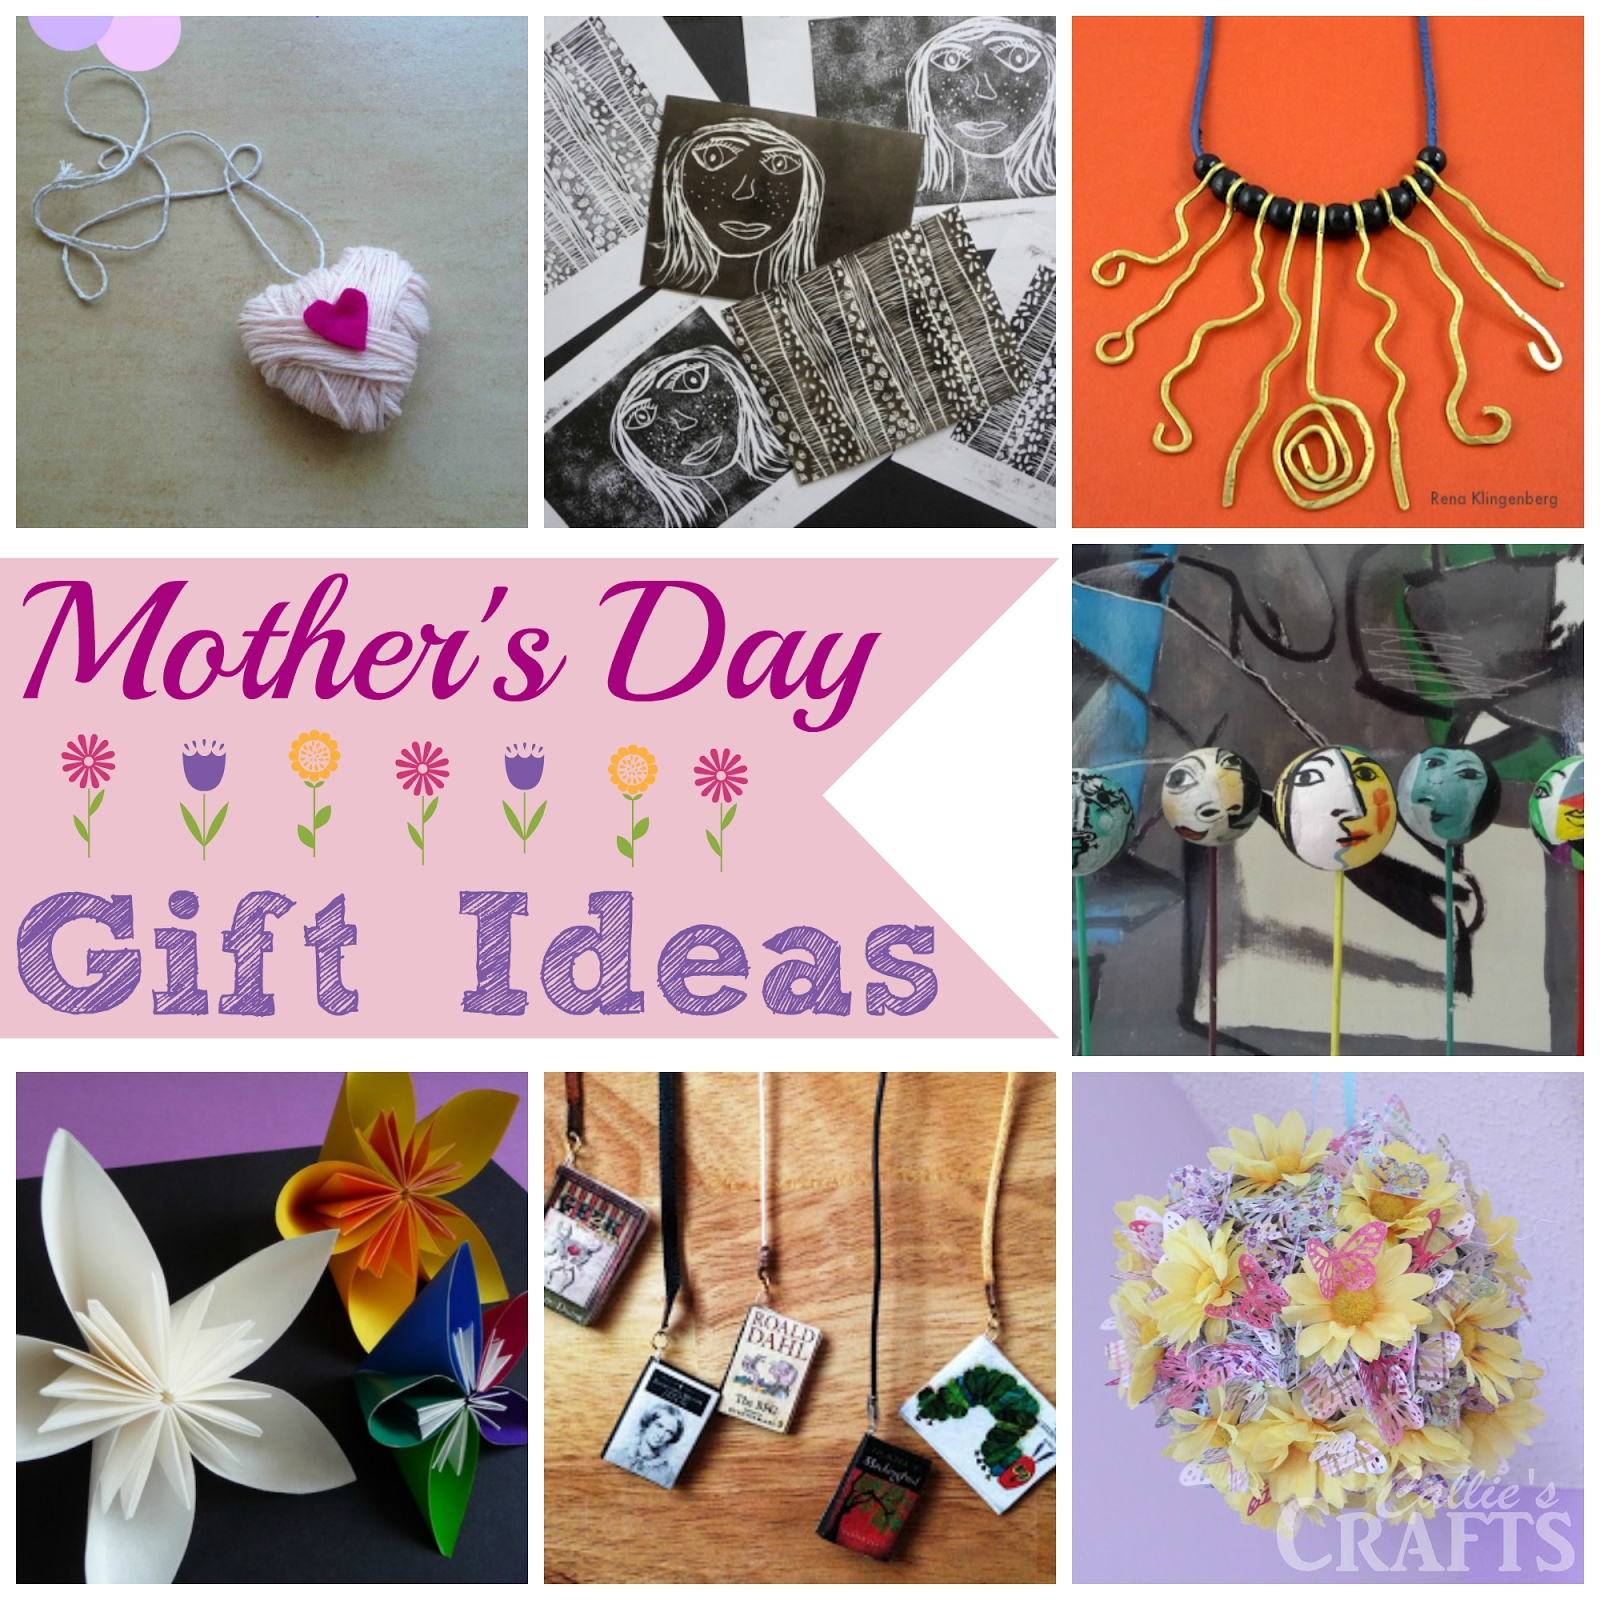 10 Attractive Ideas For Gifts For Mom gift ideas mom home design family and life mother s day 4 mforum 2020